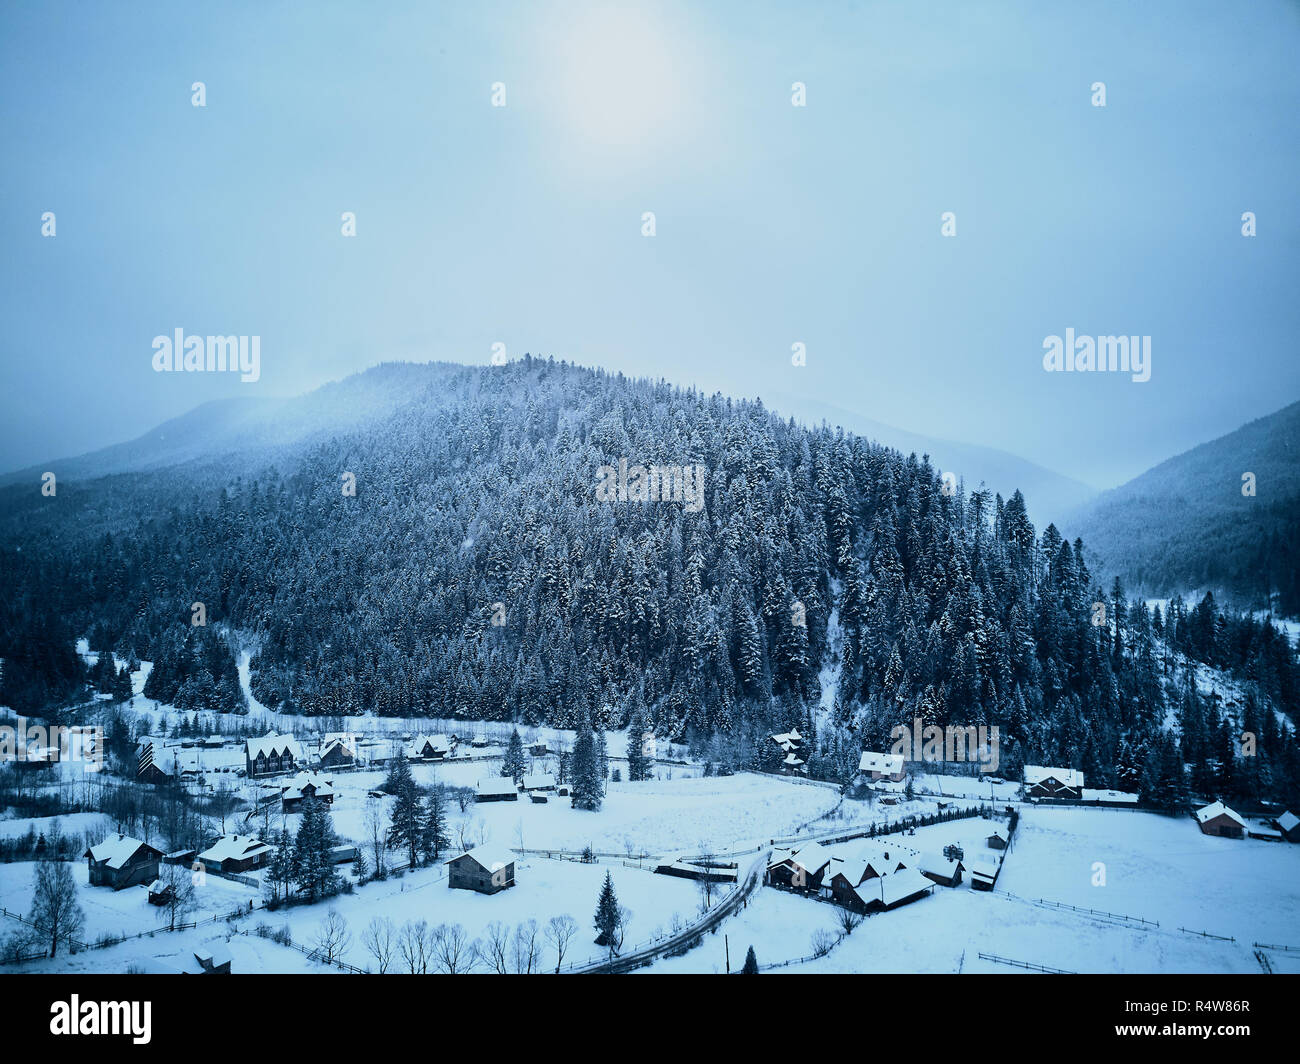 Aerial view of foggy countryside and houses in snowy valley. Hills and mountains with pine tree forest covered in snow. Multi-layered mountain landscape. Ski resort and traveltheme. Moody weather. - Stock Image